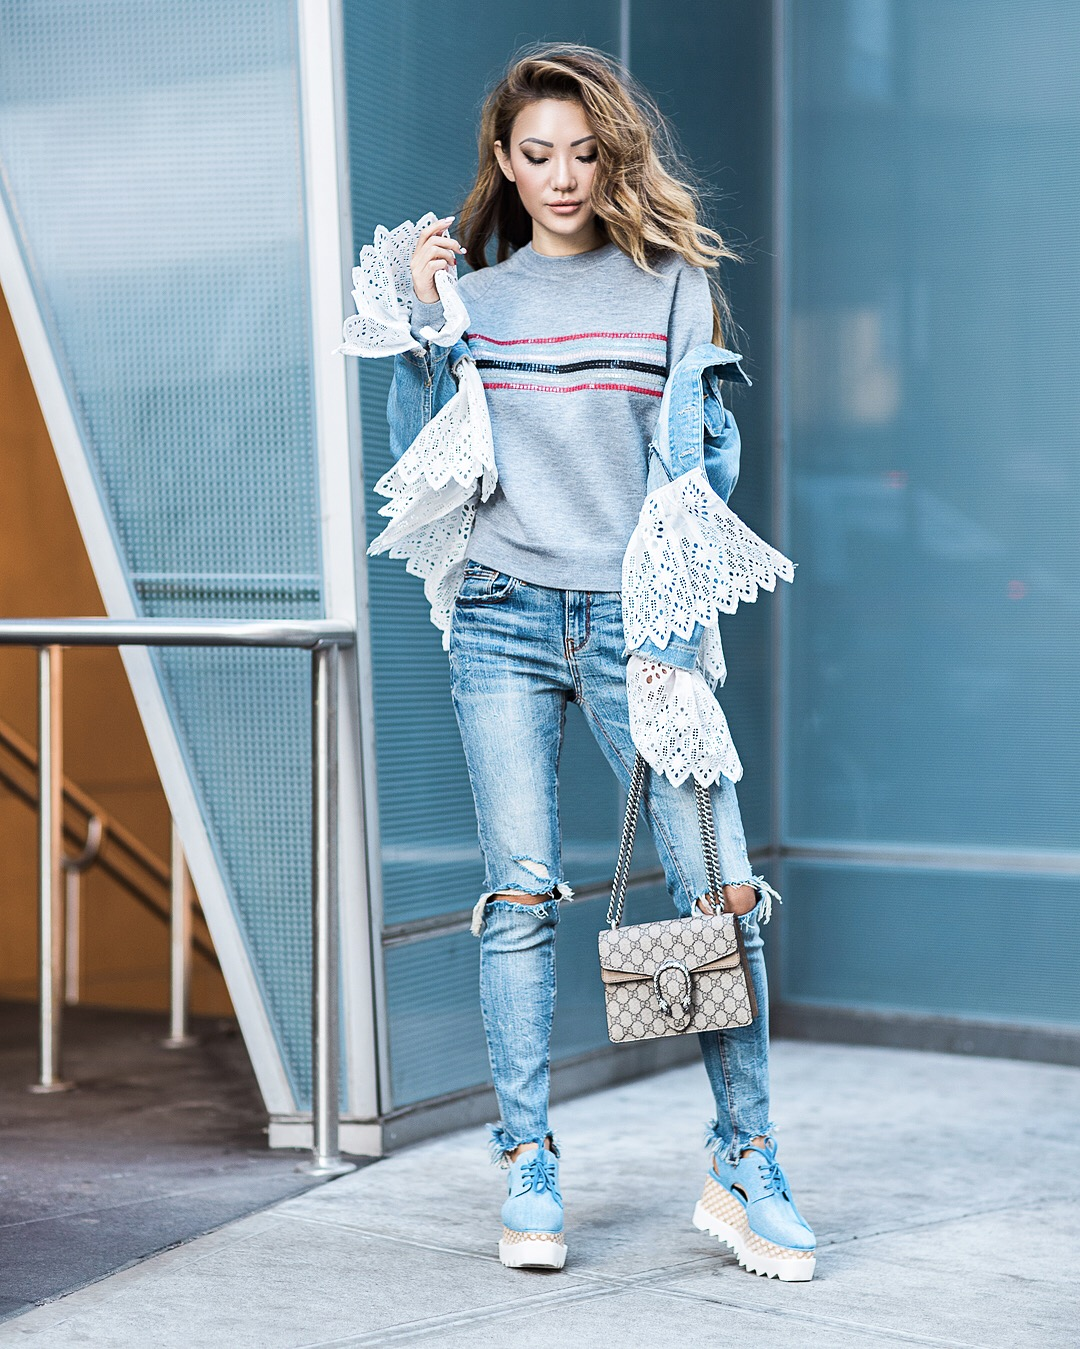 7 Posing Tips for Bloggers - stella mccartney elyse denim shoes, denim outfit // Notjessfashion.com